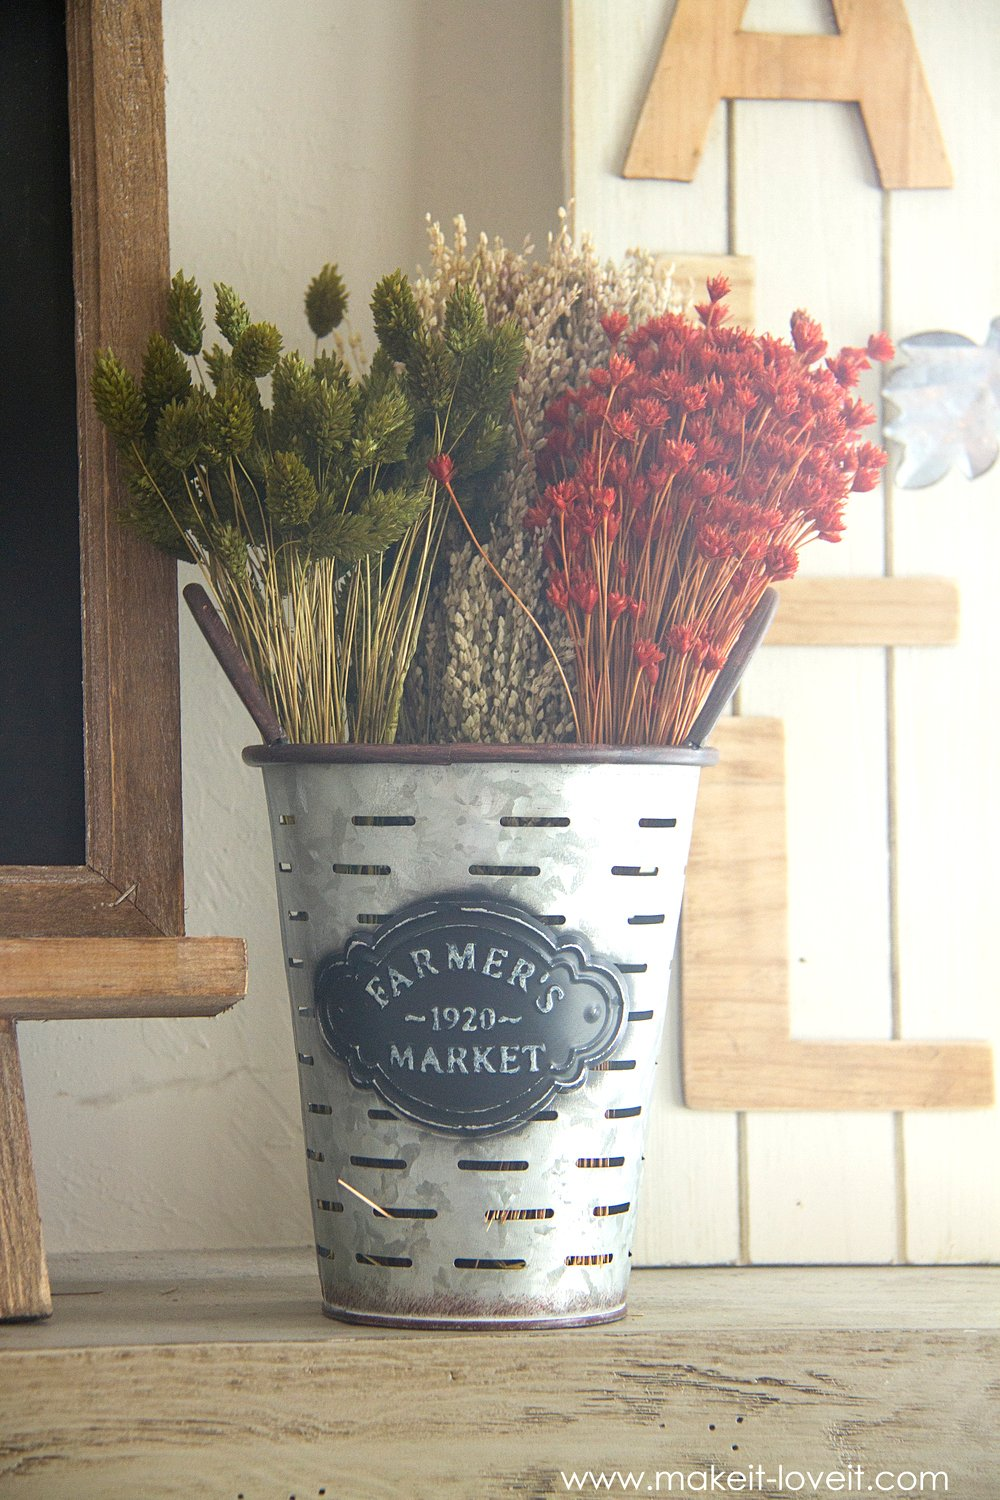 Some Fall Decor Inspiration (…I know, a little early!)